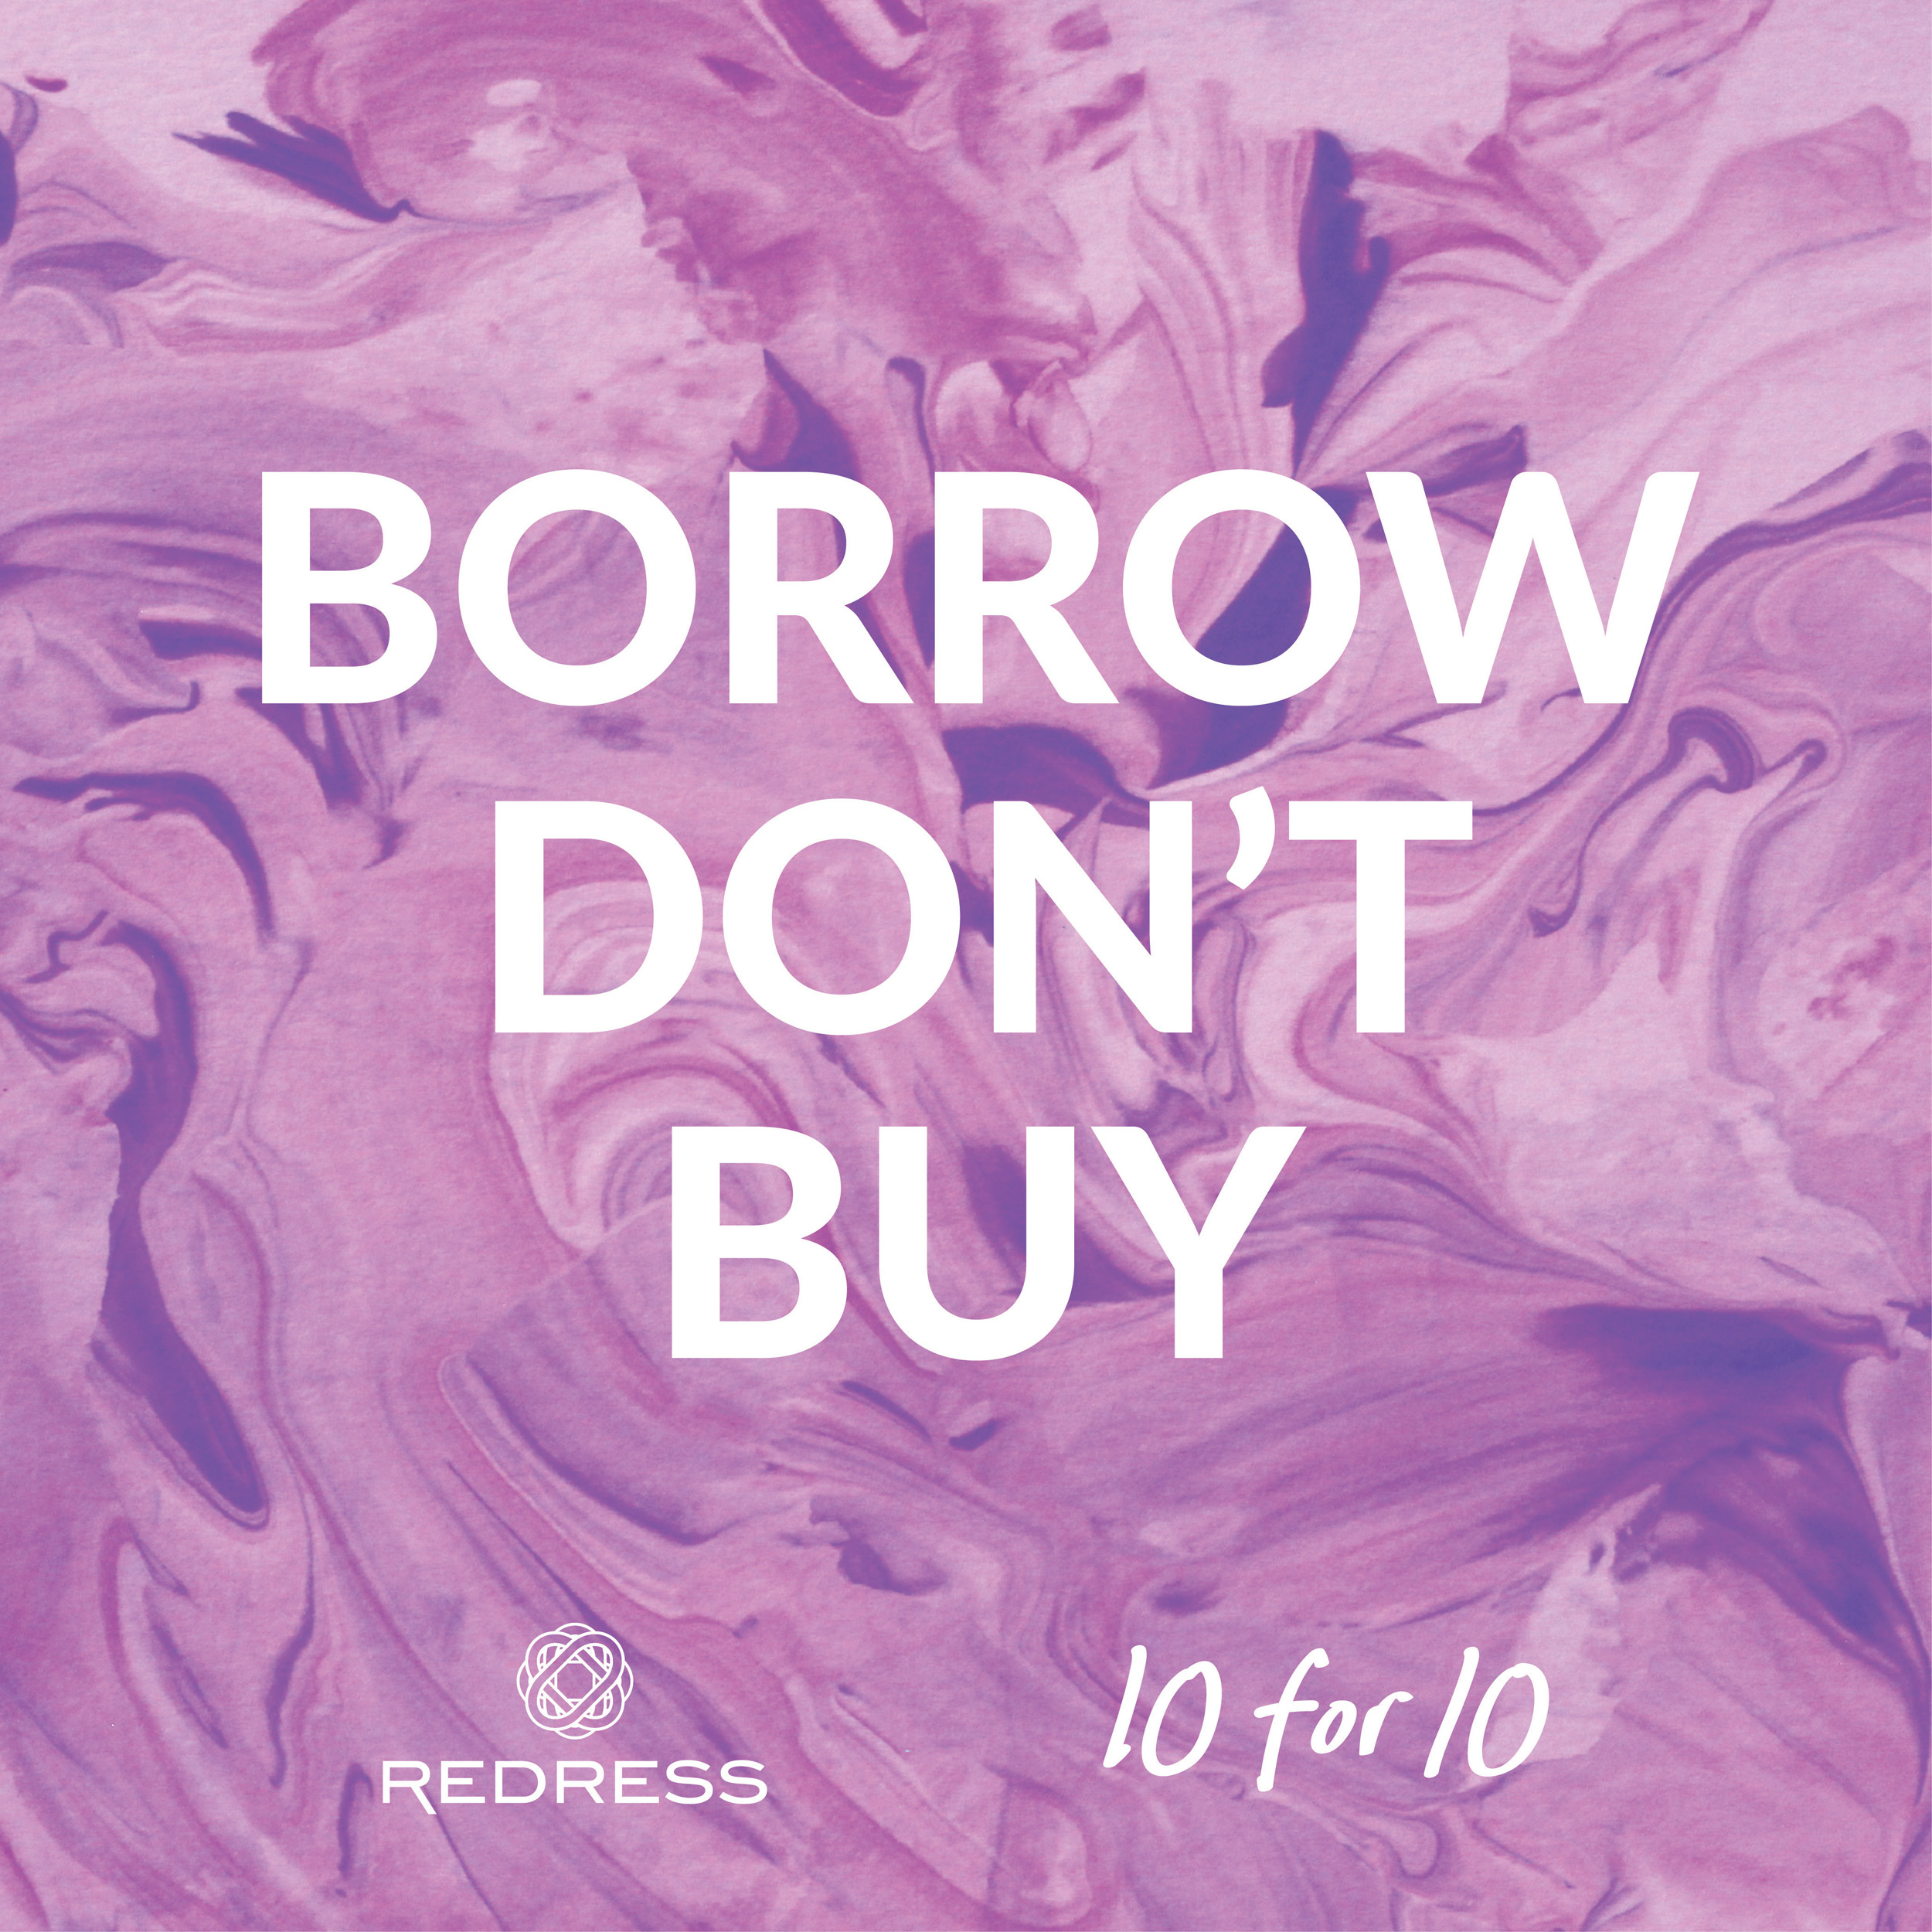 Redress 10for10 BorrowDontBuy.jpg